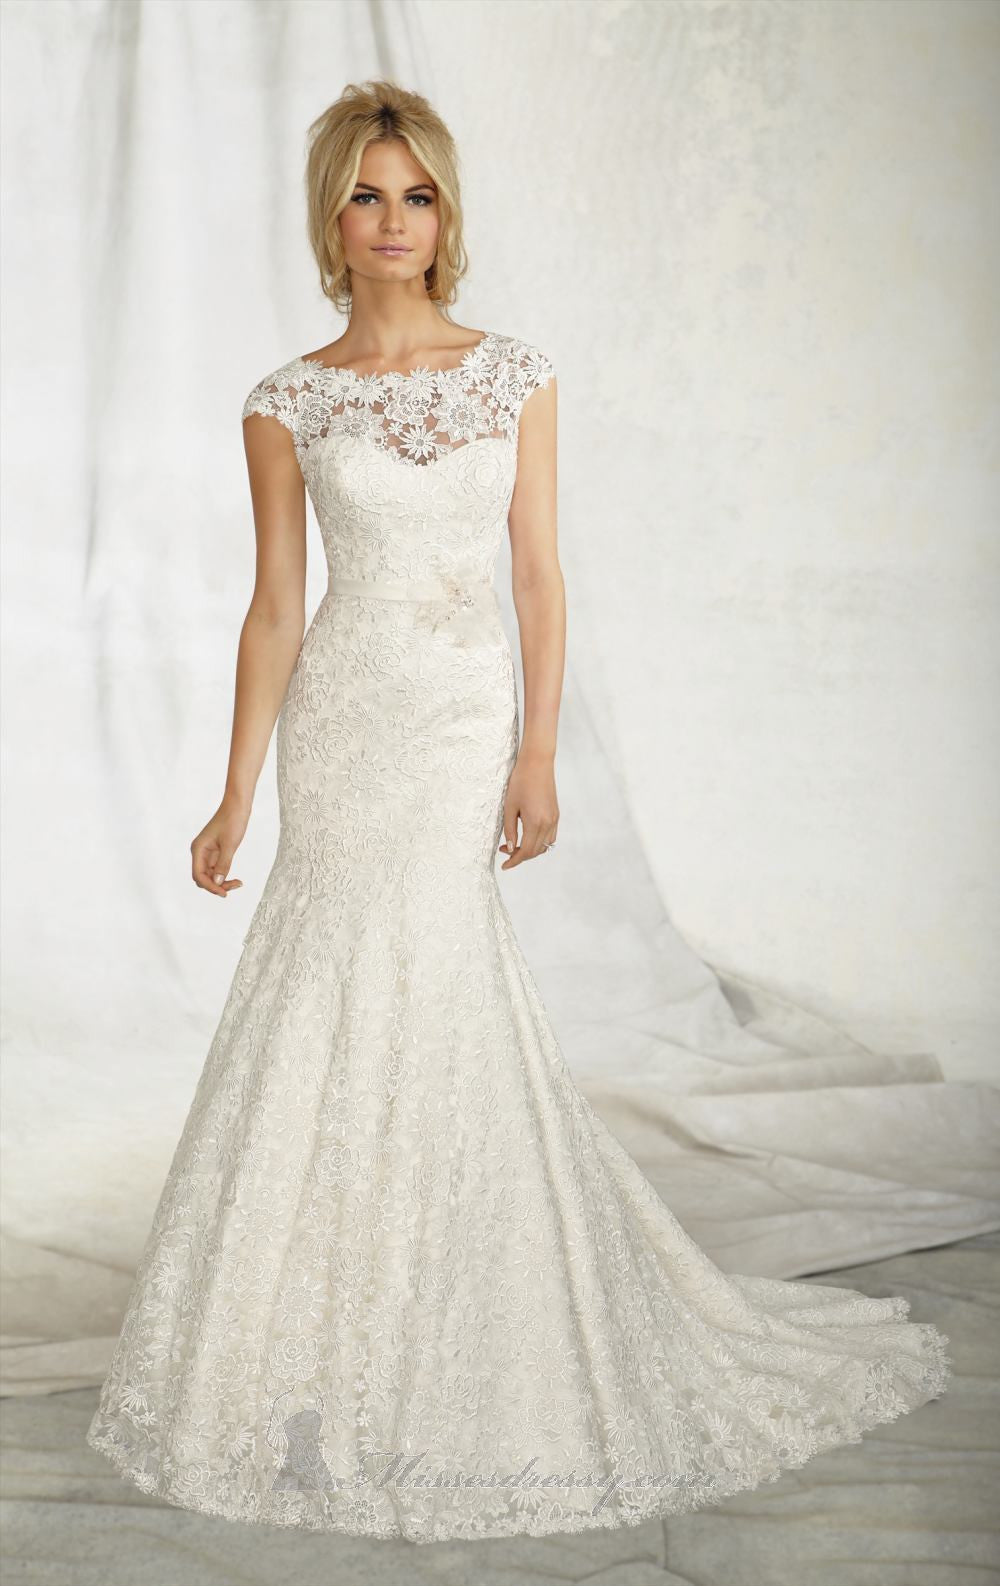 Mori Lee 'Angelina Faccenda' 1257 - Mori Lee - Nearly Newlywed Bridal Boutique